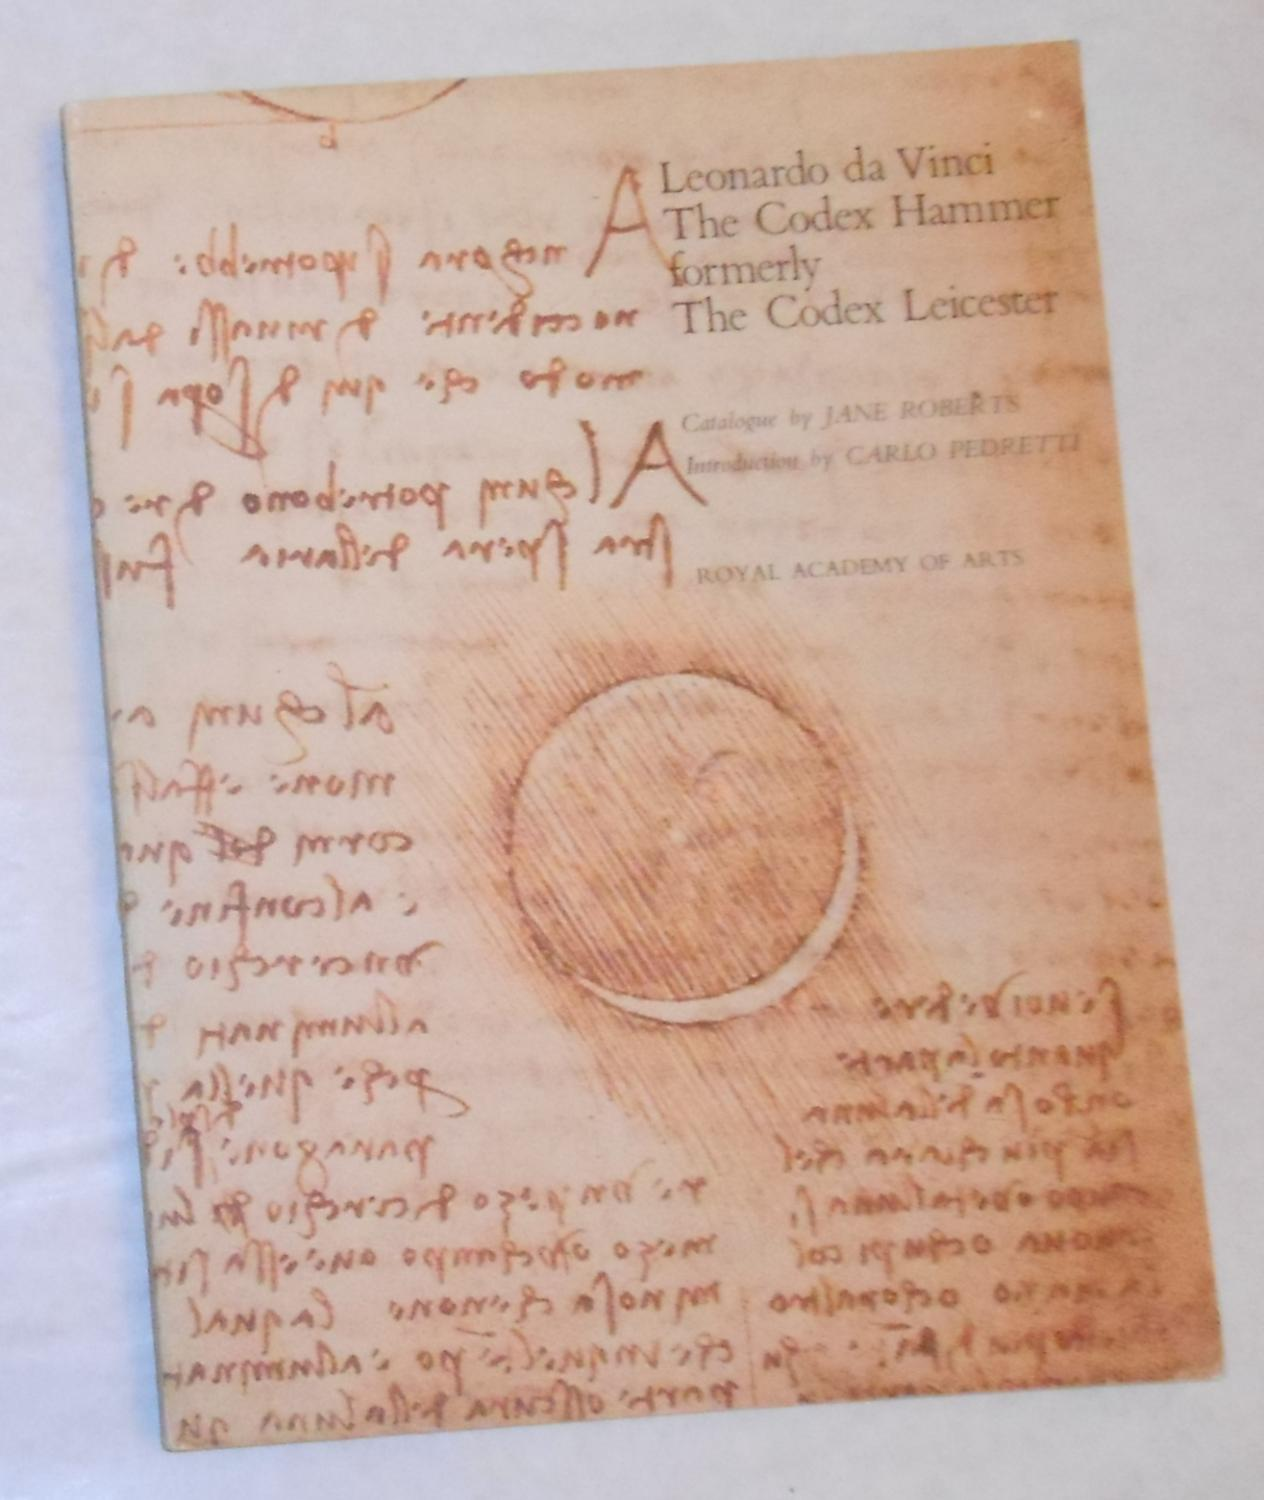 codex hammer of leonardo da vinci the waters the earth the universe